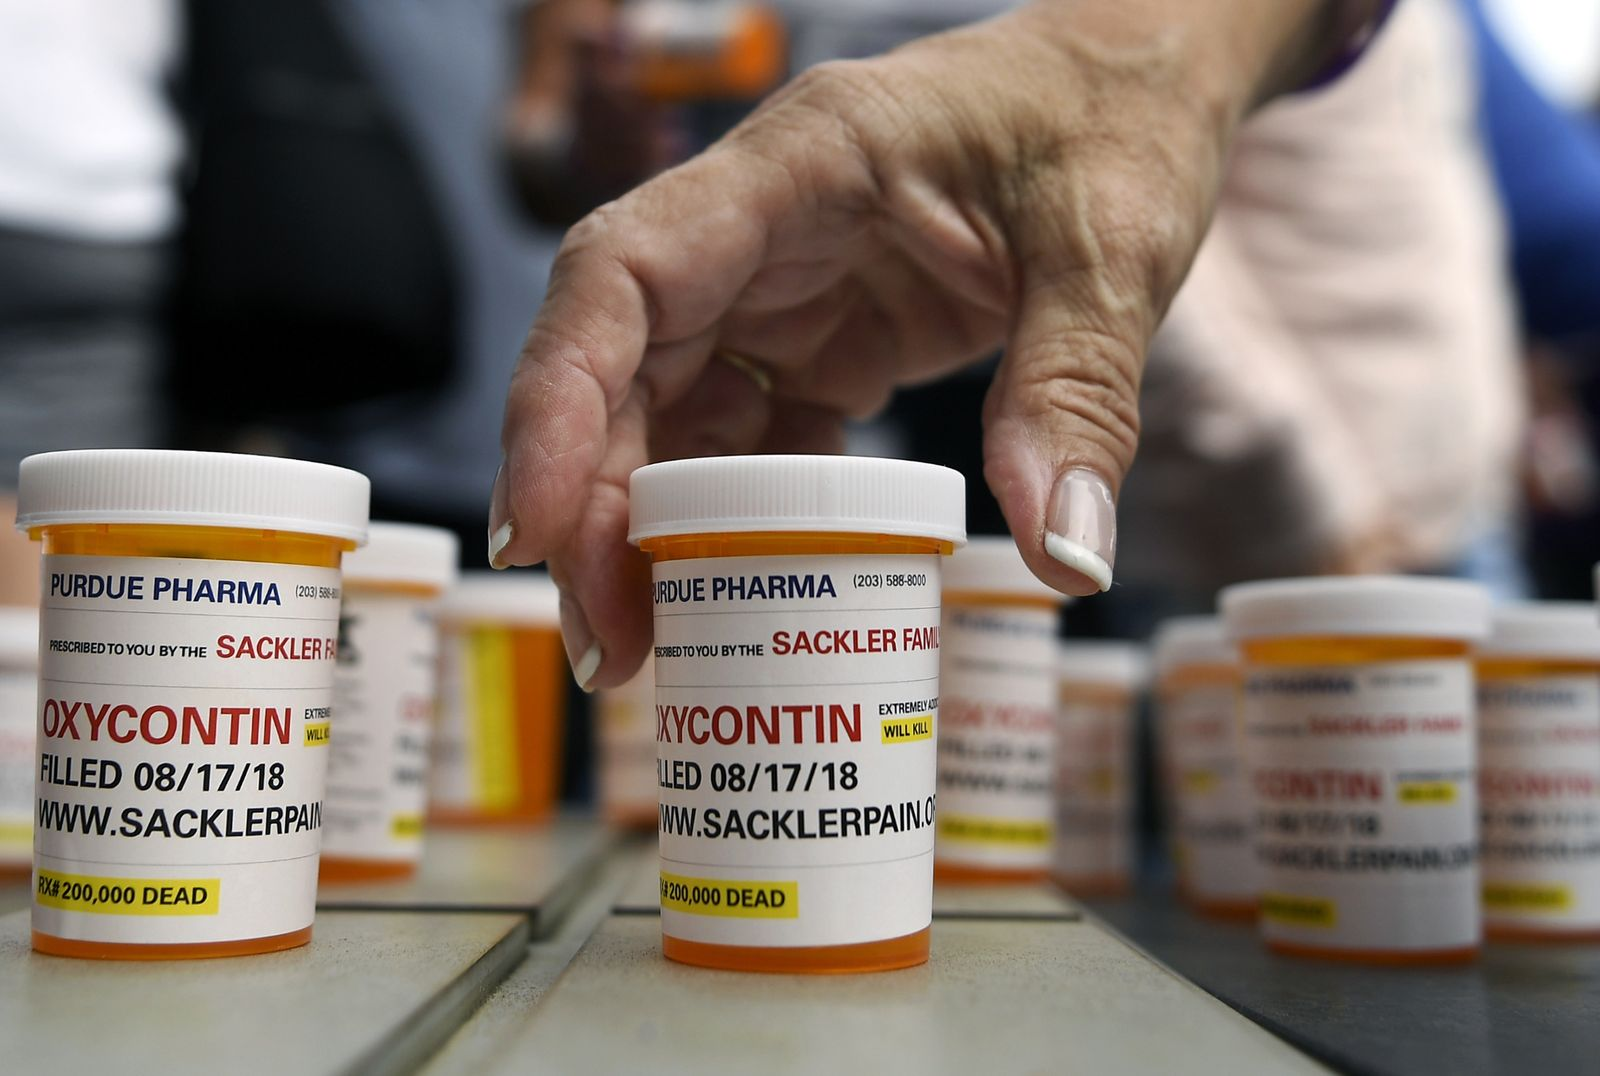 OxyContin / Opioid Crisis Lawsuits